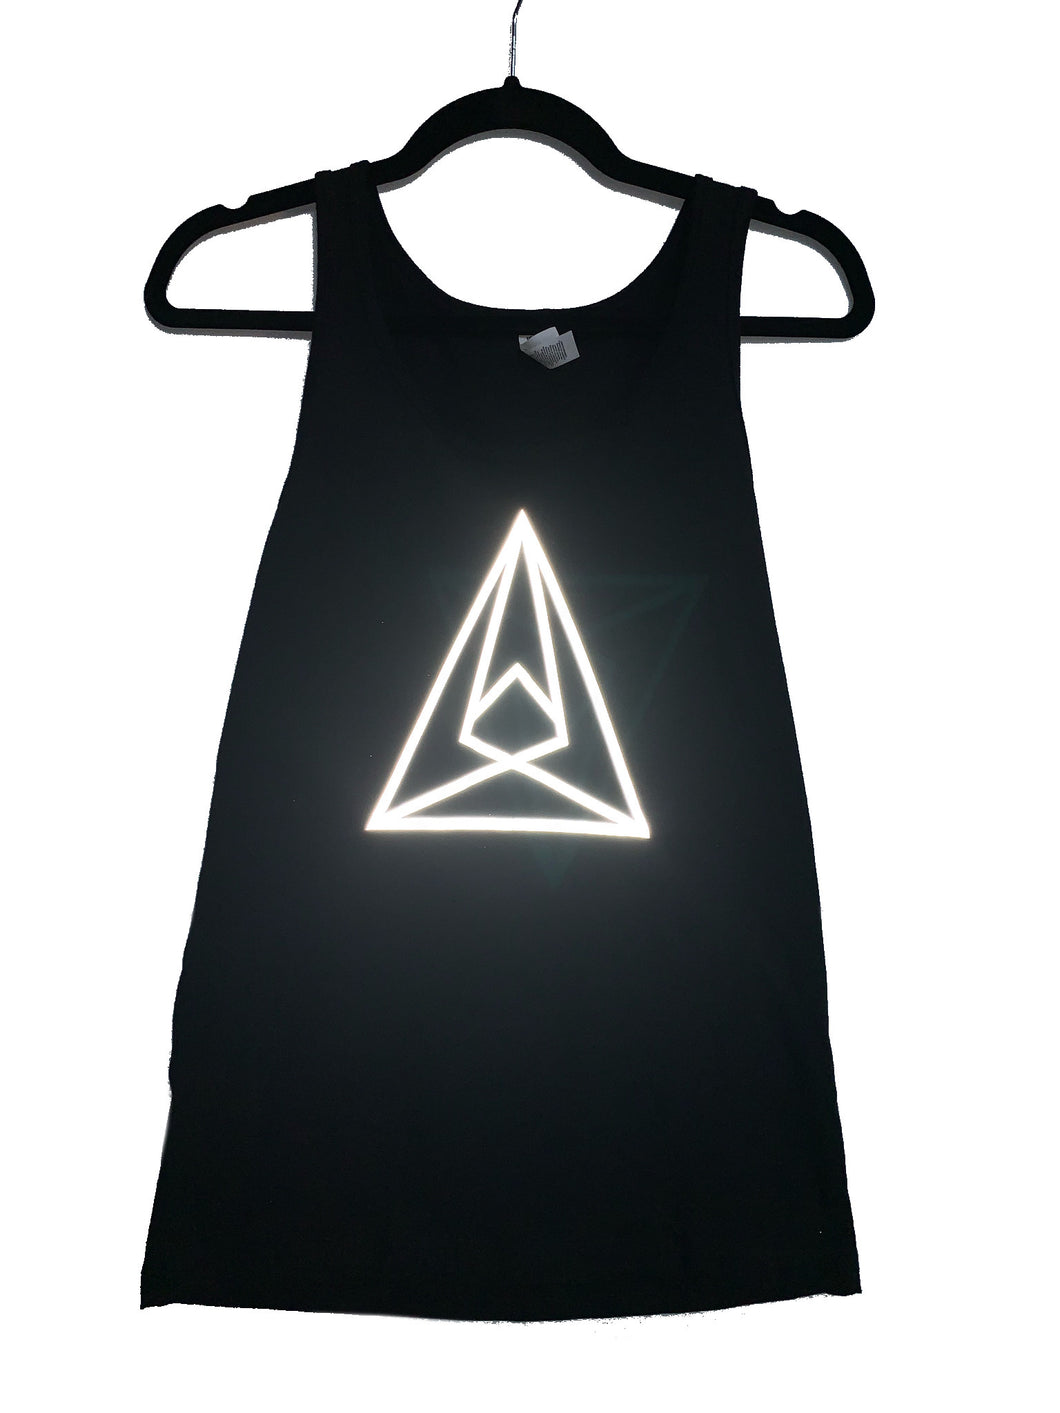 Seismic Men's Tank in Black w/ Reflective Silver Symbol